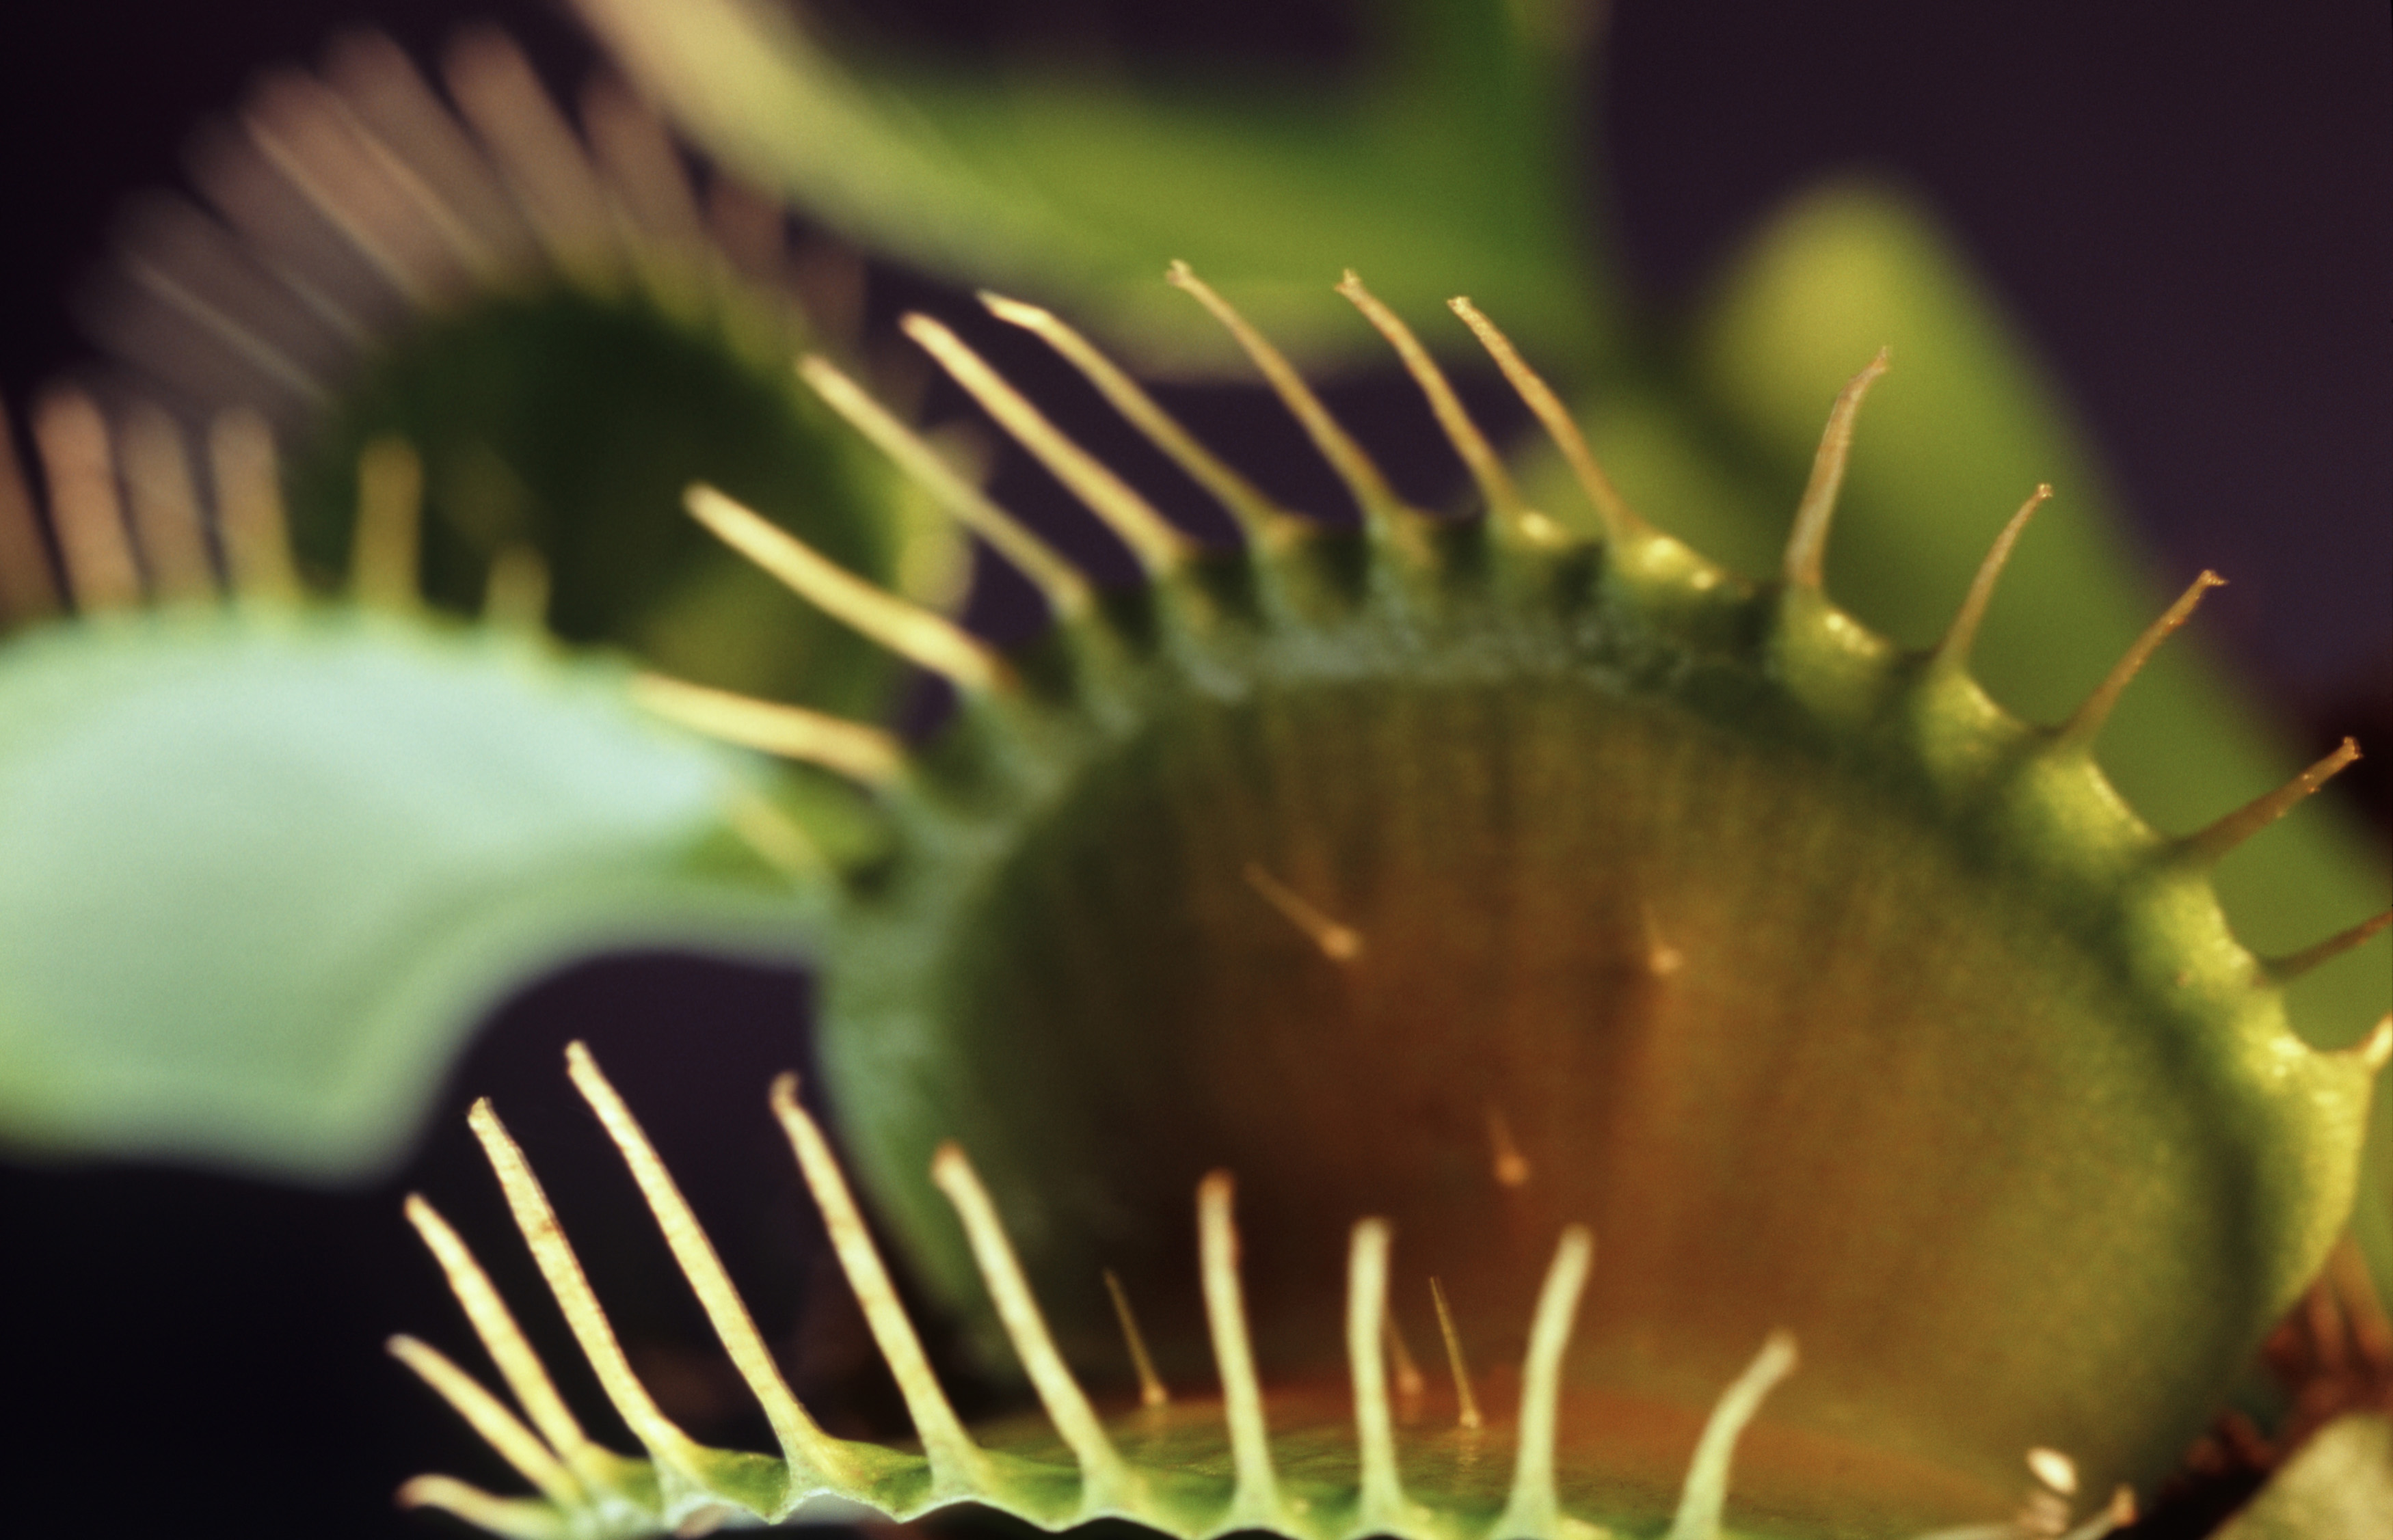 Close up detail of the bristles on the margines of the Venus Fly Trap leaves used to trap insects on which the plant preys